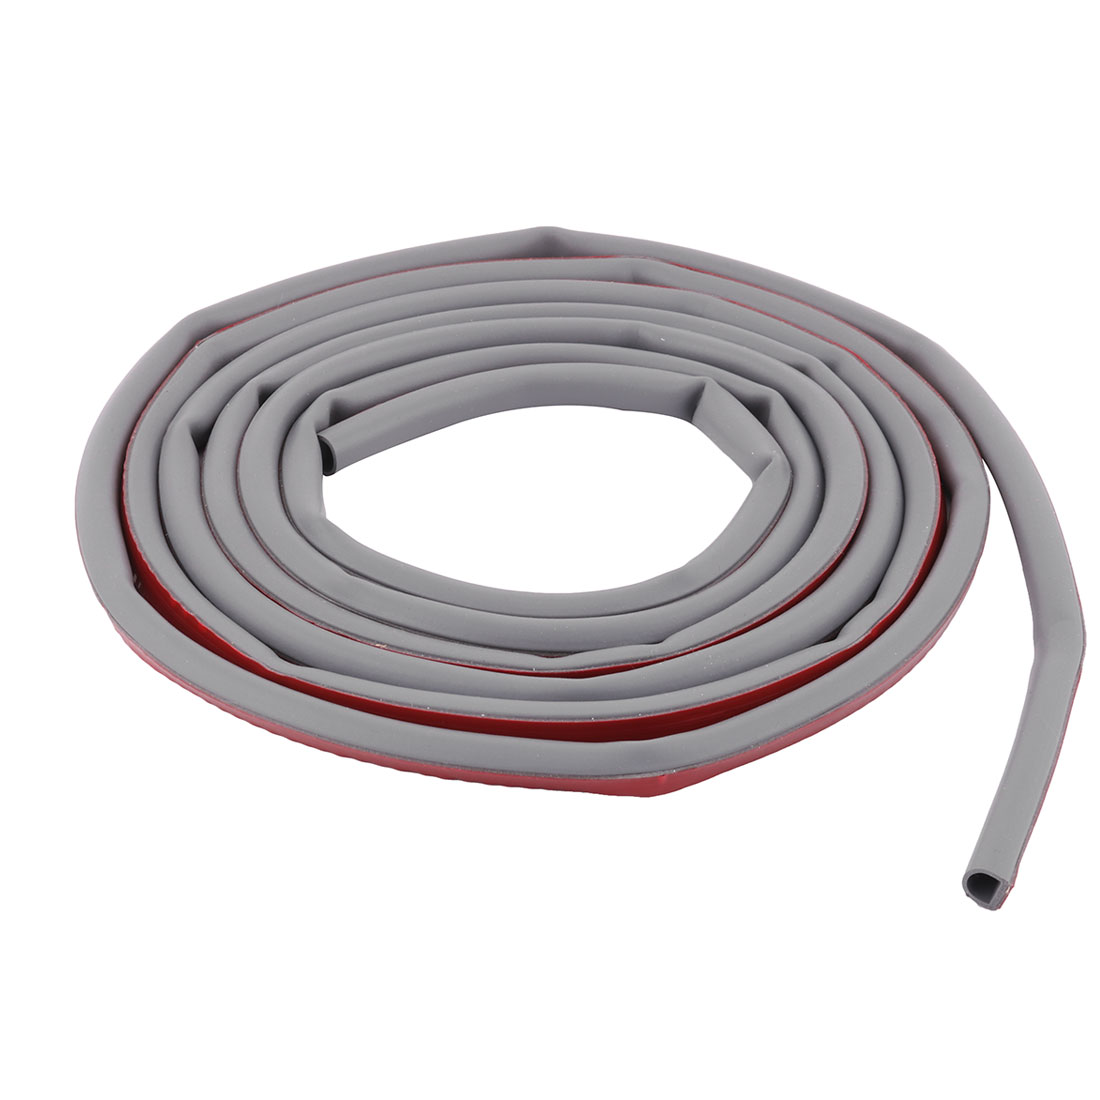 Hotel Rubber Self-Adhesive Door Window Seal Weather Strip Gray 9.8ft Length